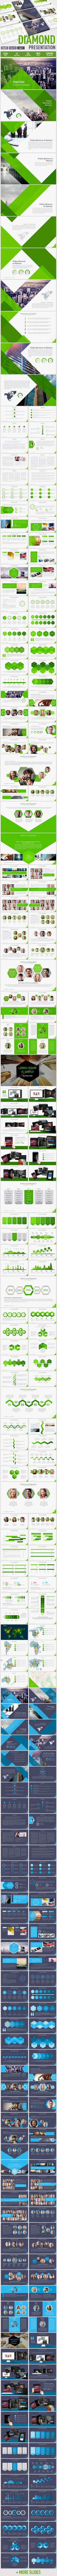 Diamond Presentation PowerPoint Template #design #slides Download: http://graphicriver.net/item/diamond-presentation-powerpoint/13112311?ref=ksioks